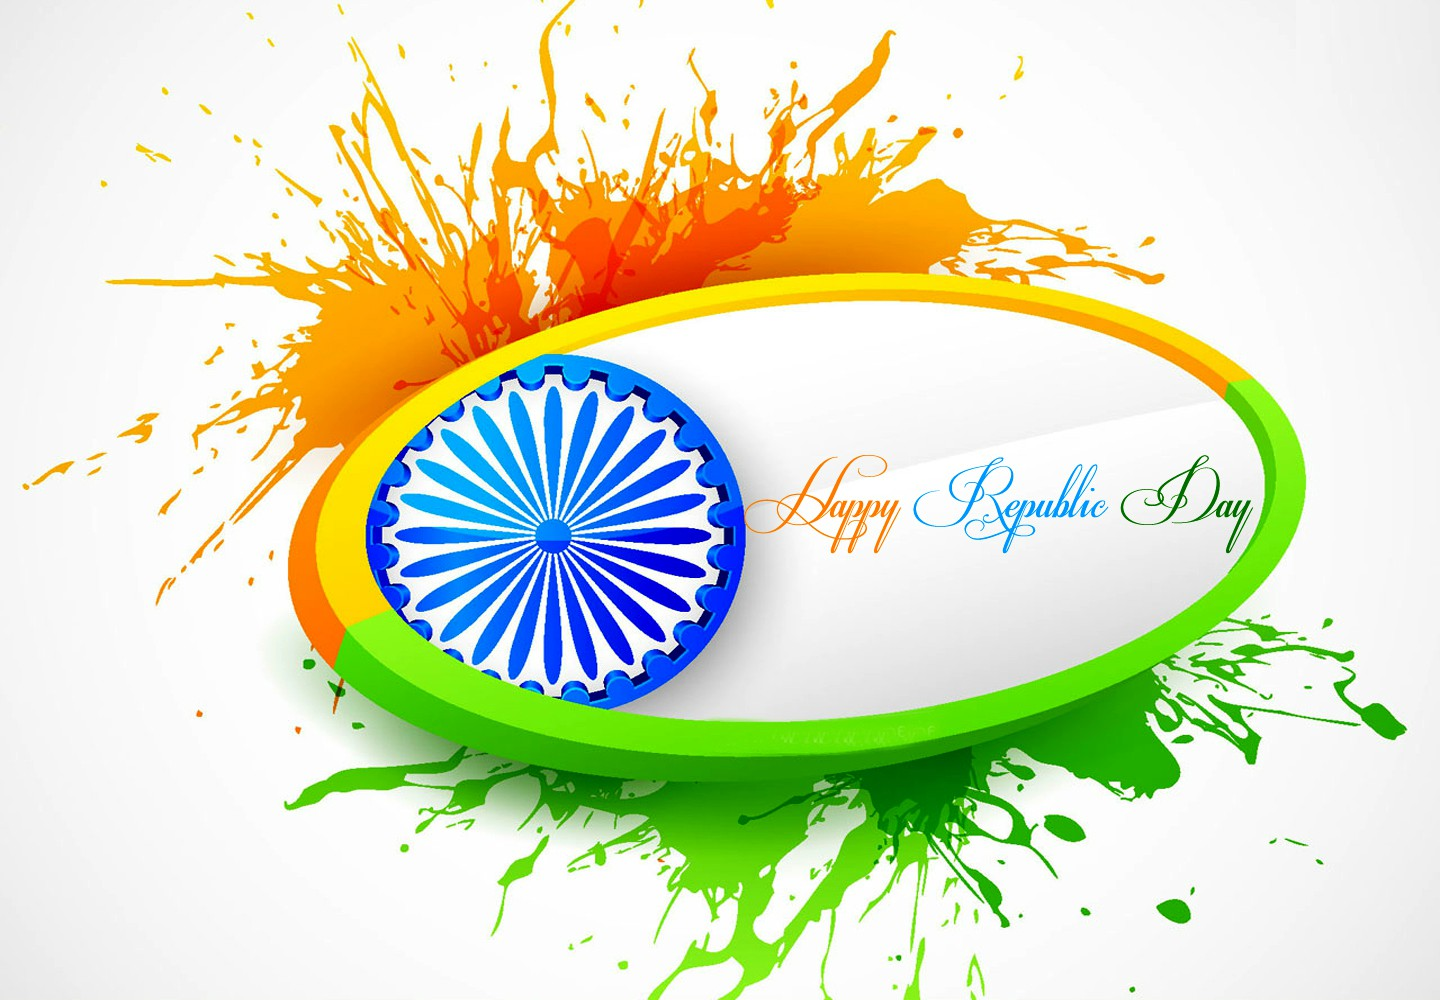 essay on the republic day of india Hey essay on republic day our country, india celebrates the republic day every year to honour the date when constitution of india came into force.